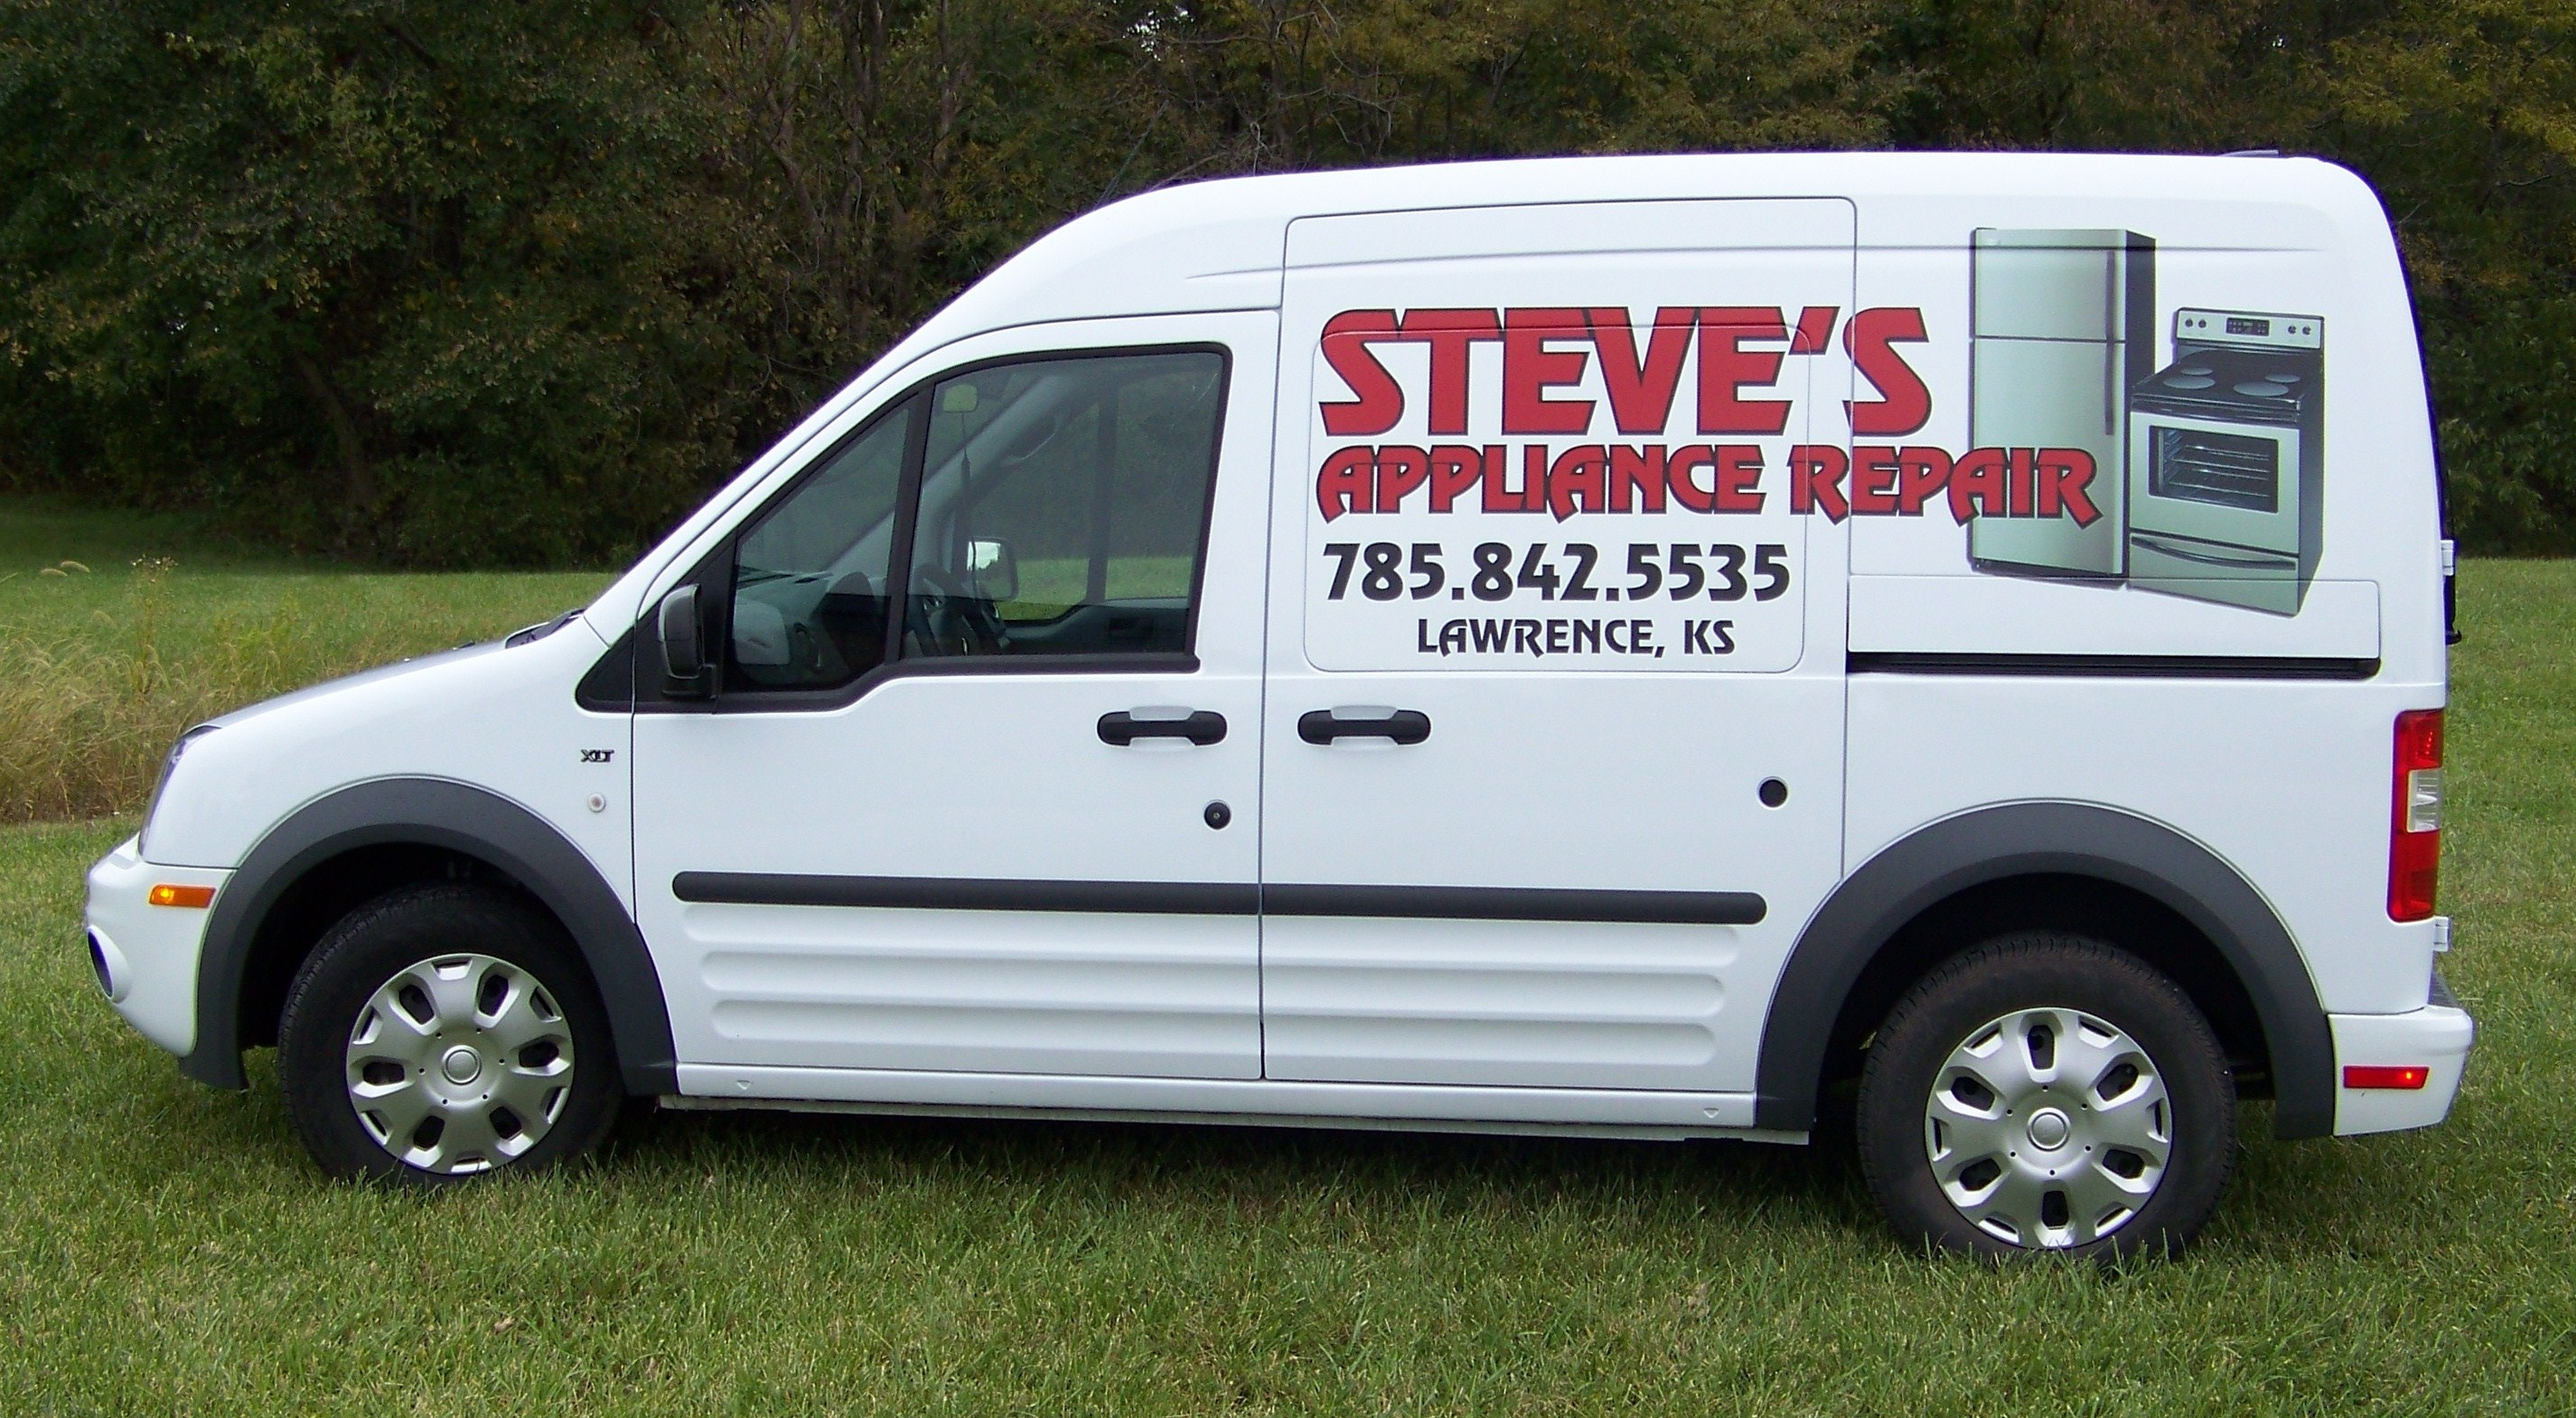 Steves Appliance Repair